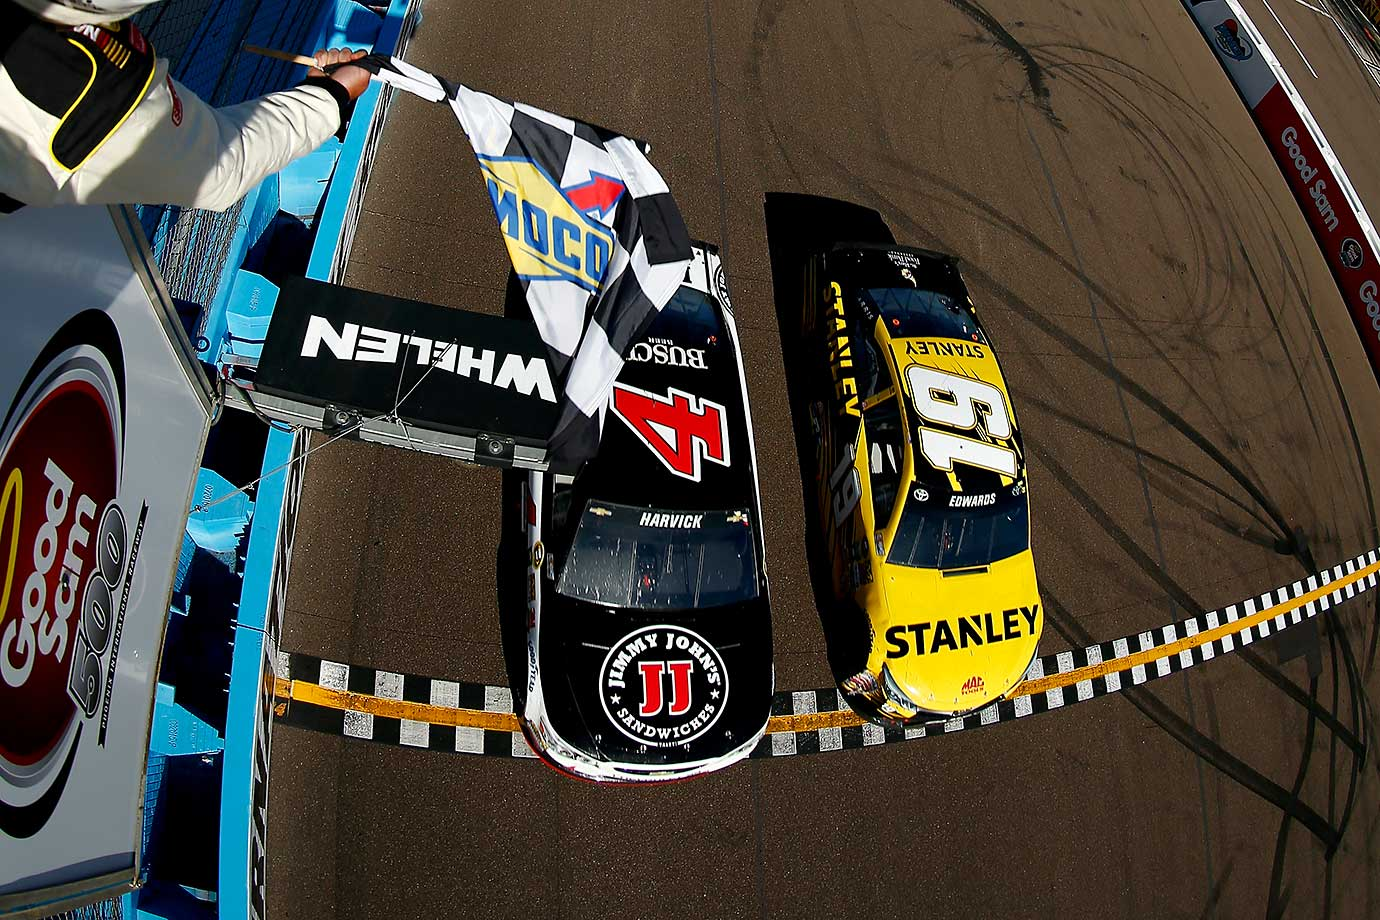 Kevin Harvick beats Carl Edwards by the narrowest of margins to win the NASCAR Sprint Cup Series Good Sam 500 at Phoenix International Raceway.